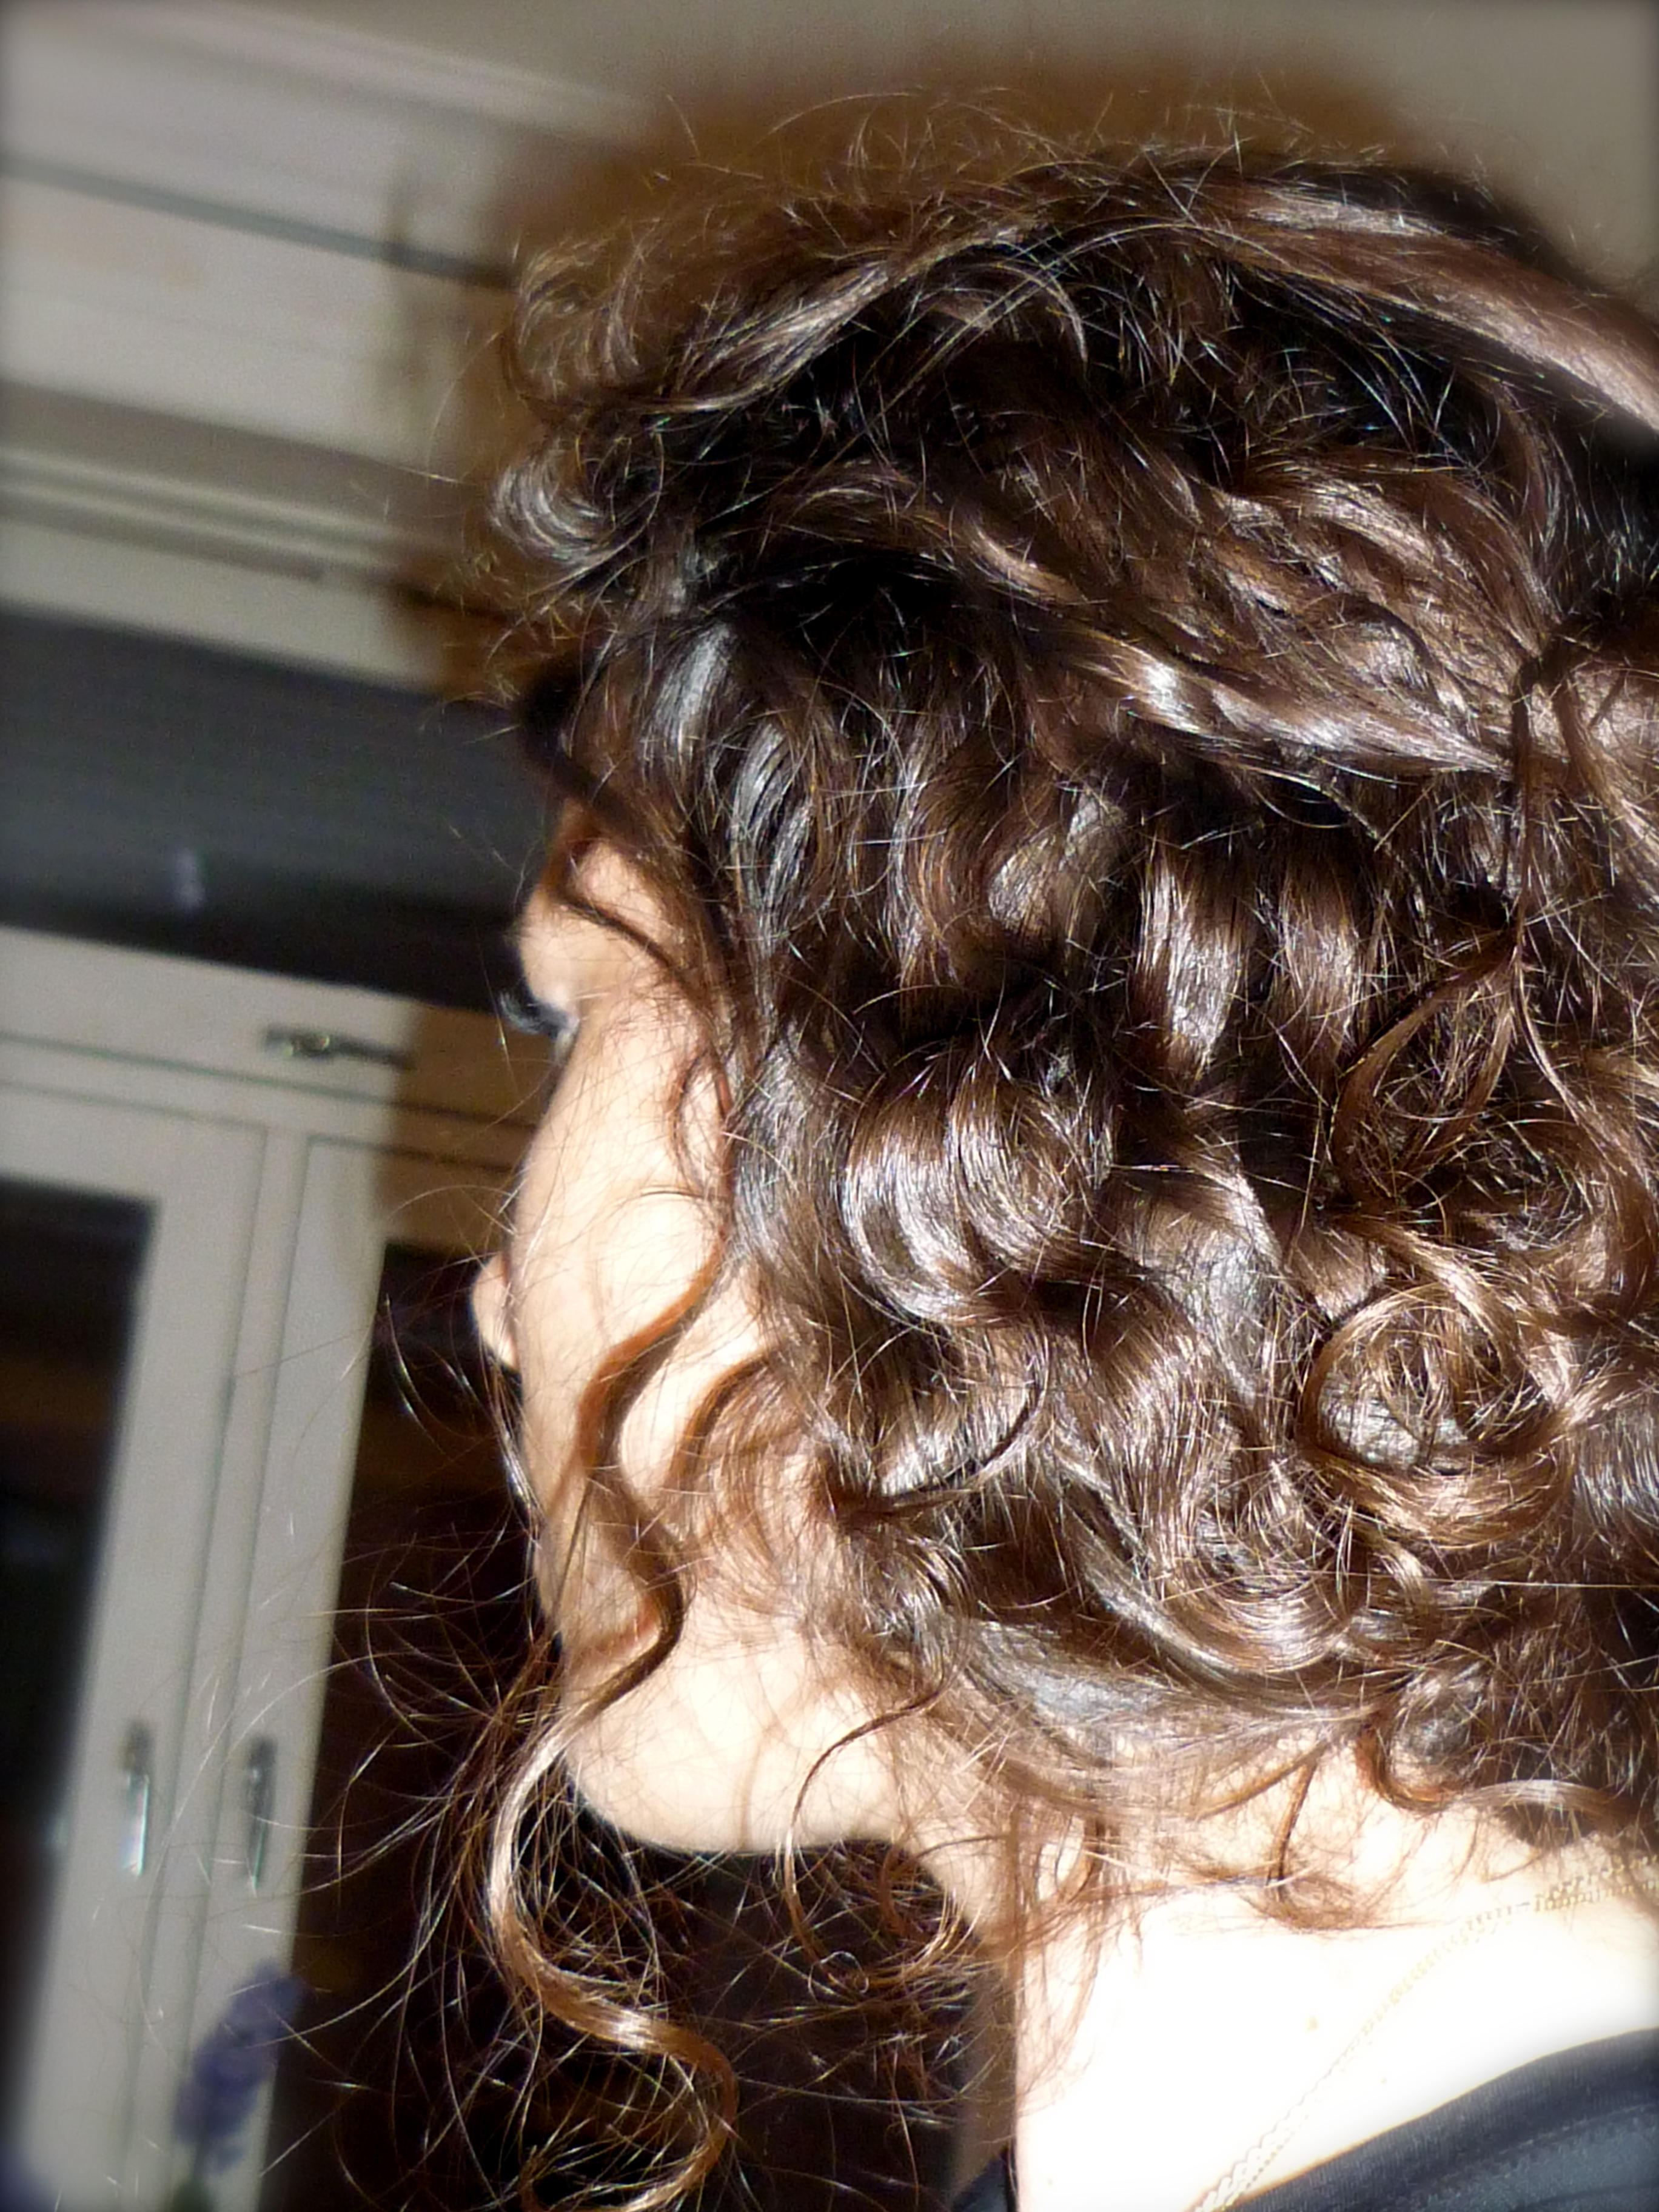 Hair – Test Result and Pocket Philosophy | beinglorious.